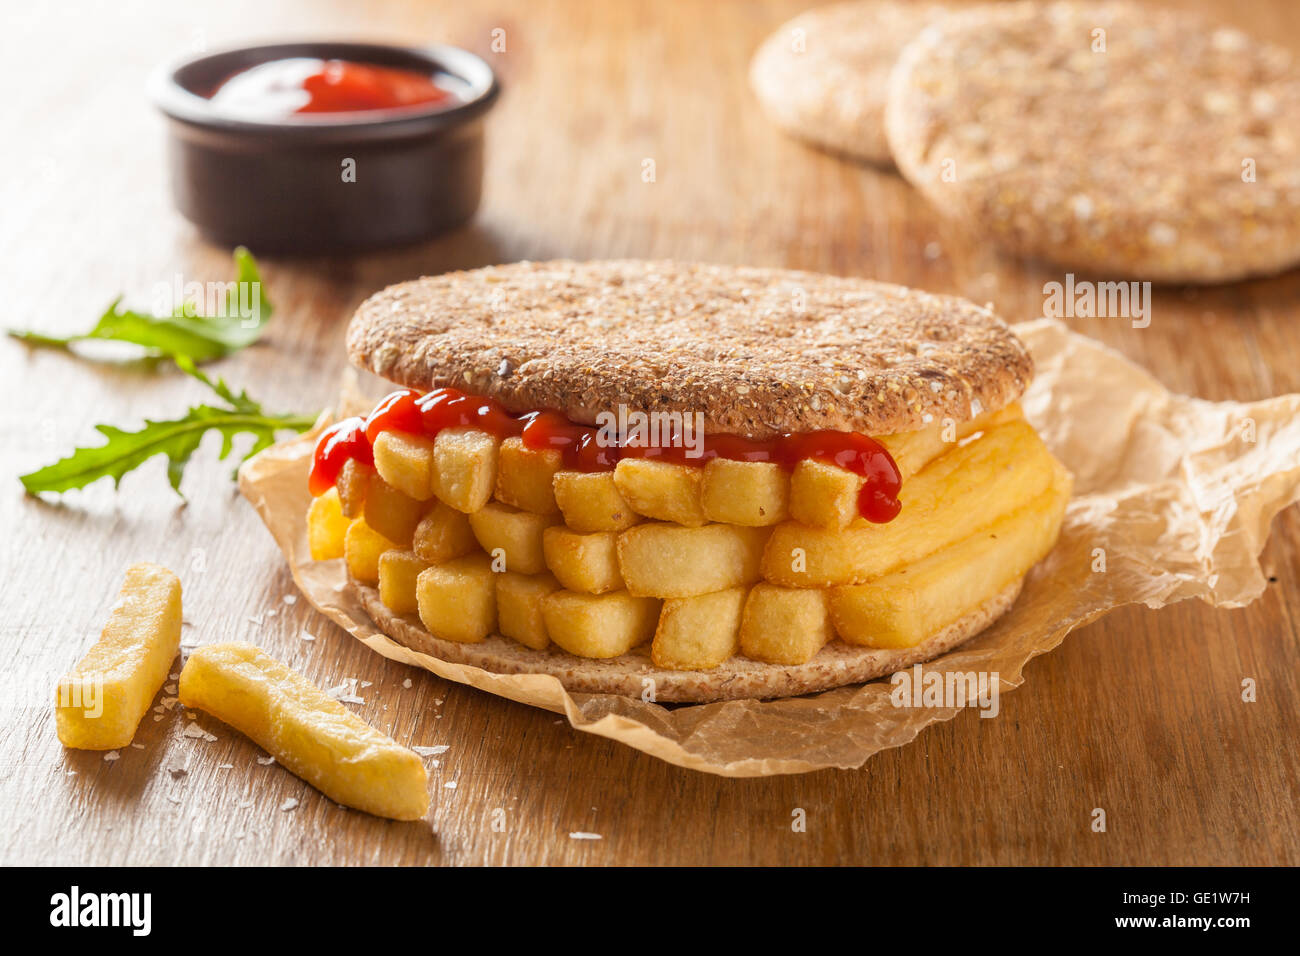 Chip Butty sandwich with potato chips or fries and ketchup - Stock Image